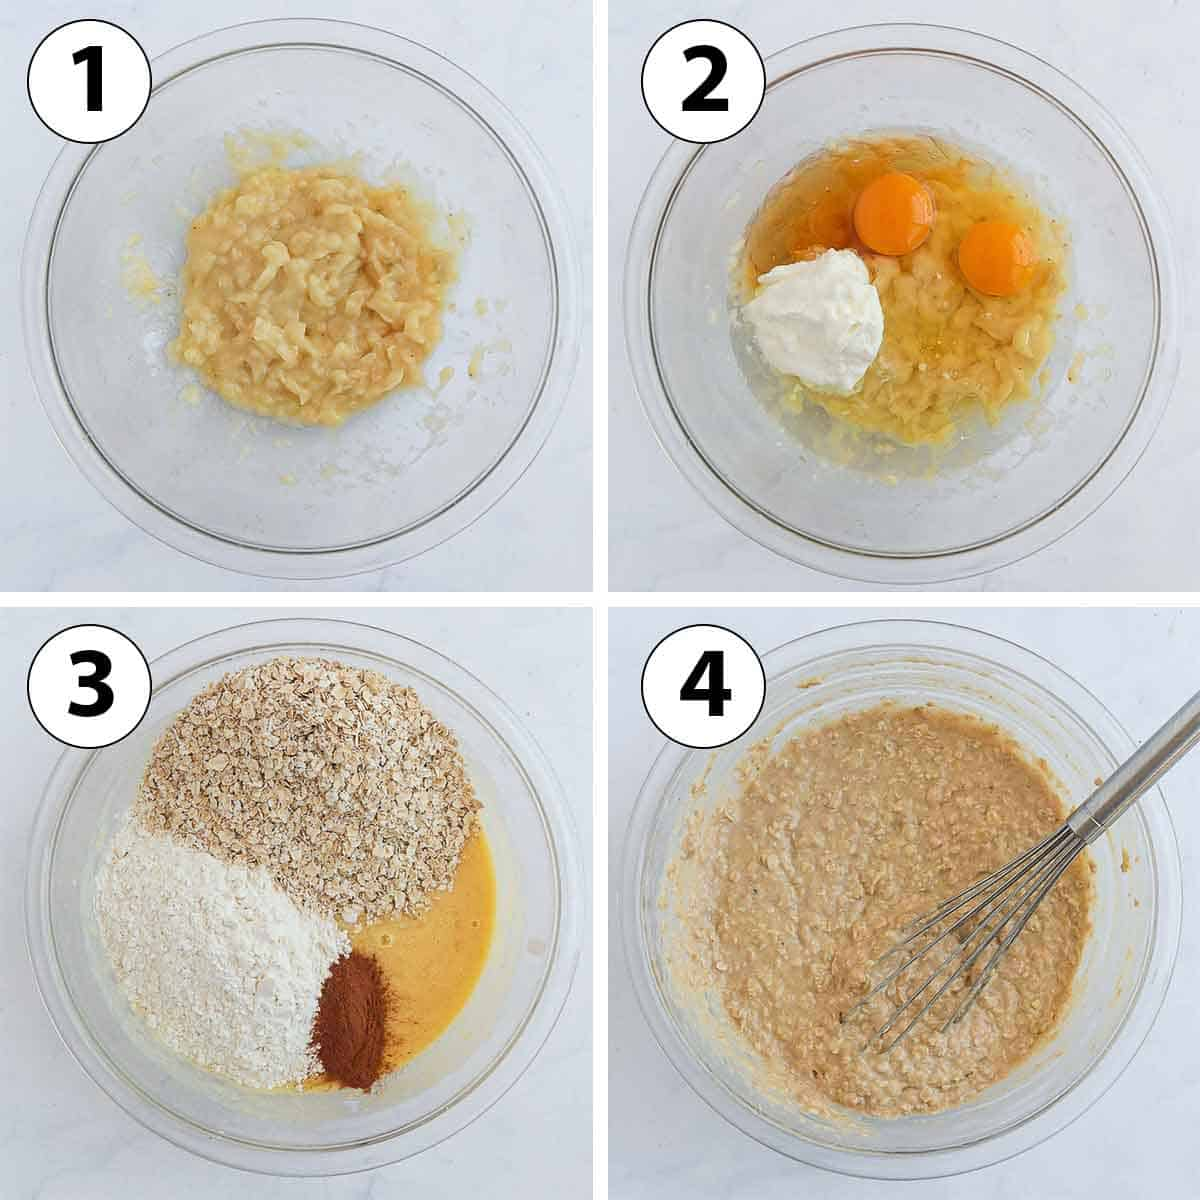 Process Shot Collage: Mixing the wet and dry ingredients.